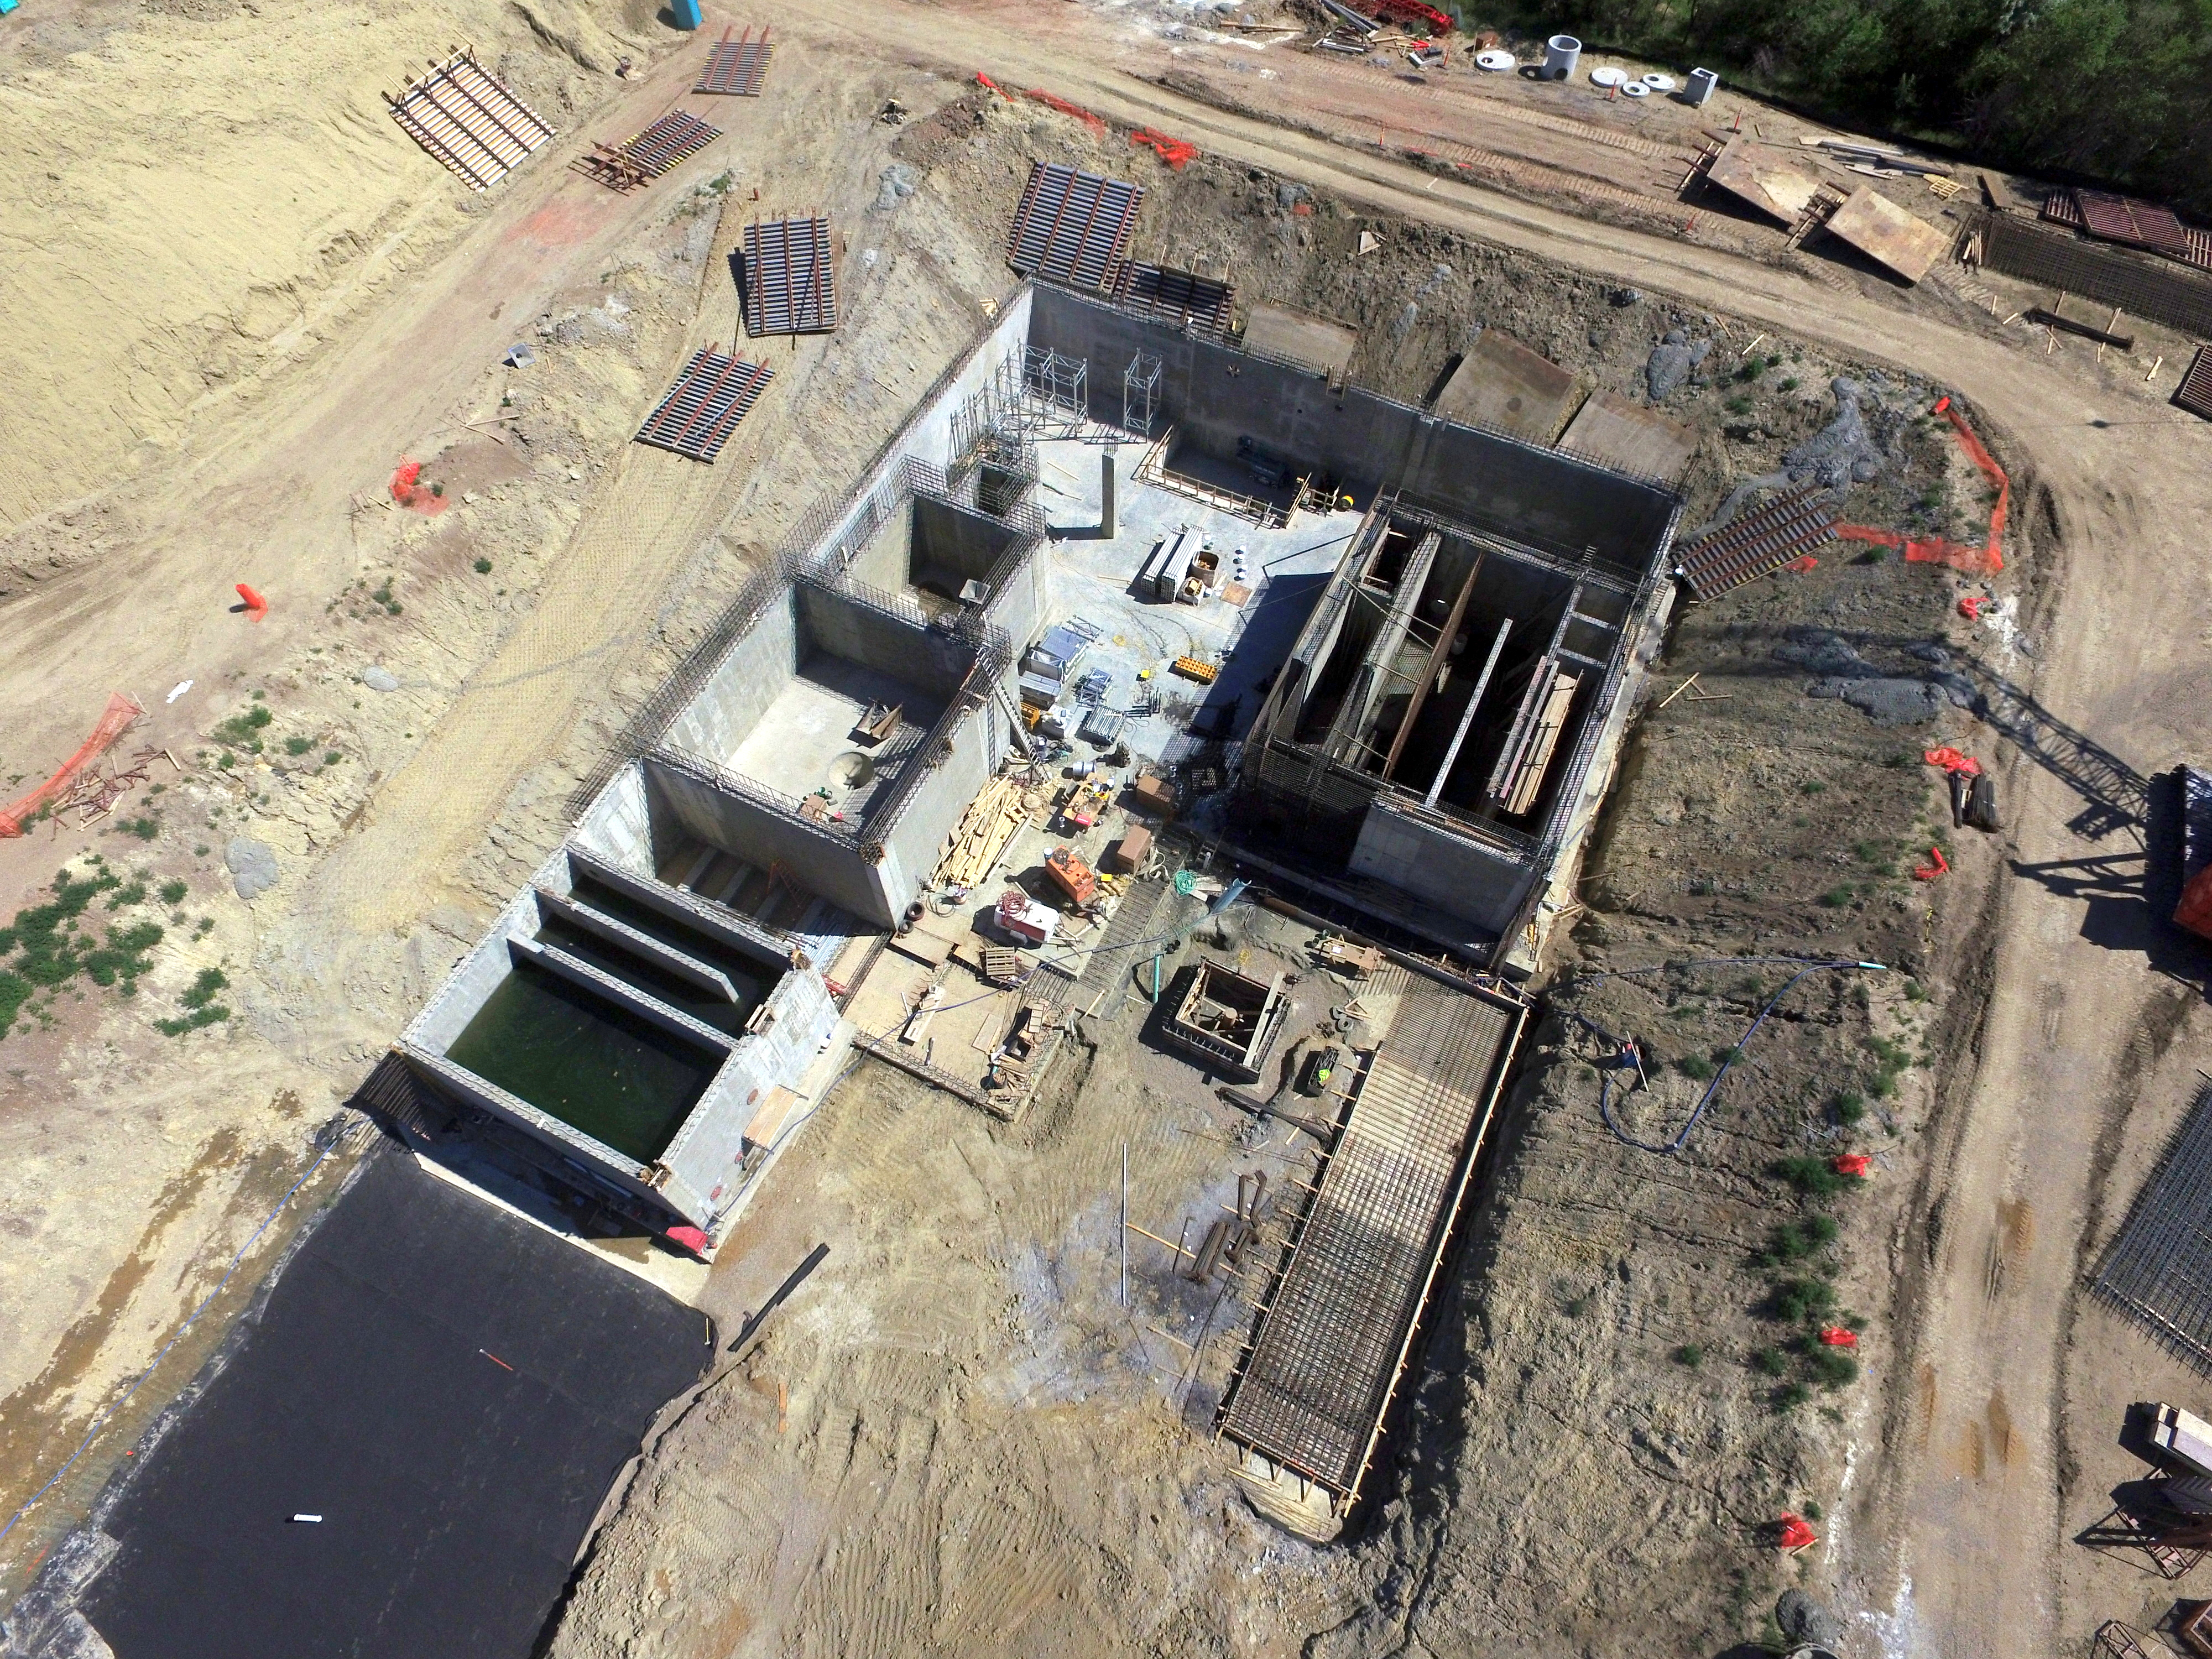 Overhead drone photo of entire construction site.